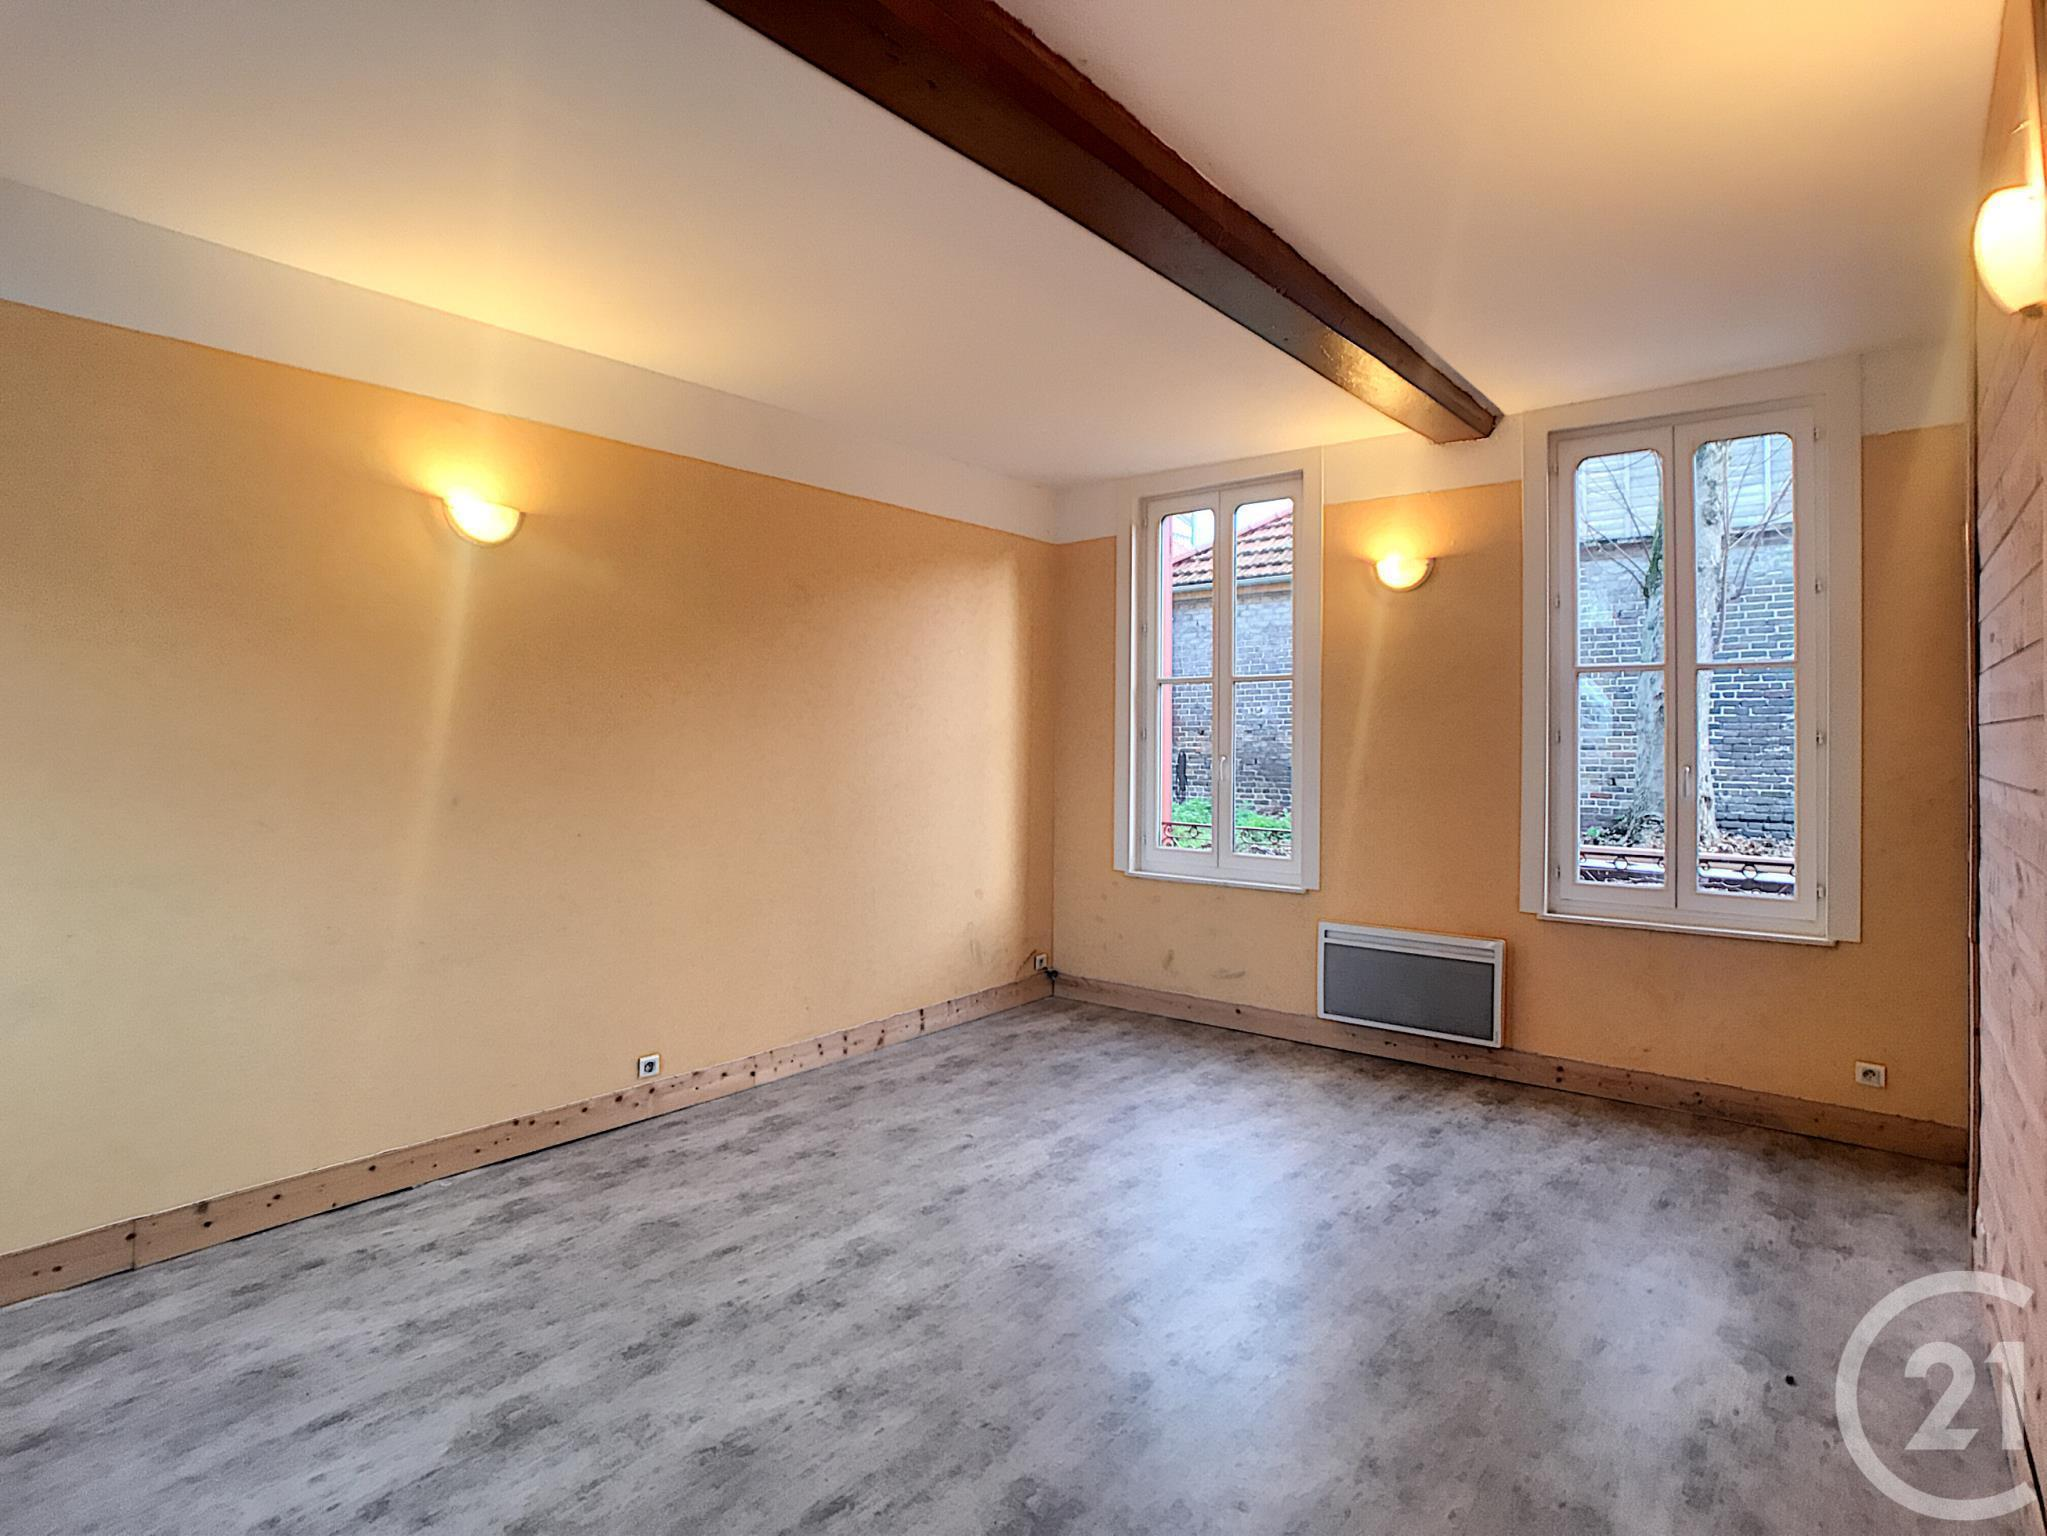 Appartement F2 à vendre - 2 pièces - 43 m2 - TROYES - 10 - CHAMPAGNE-ARDENNE